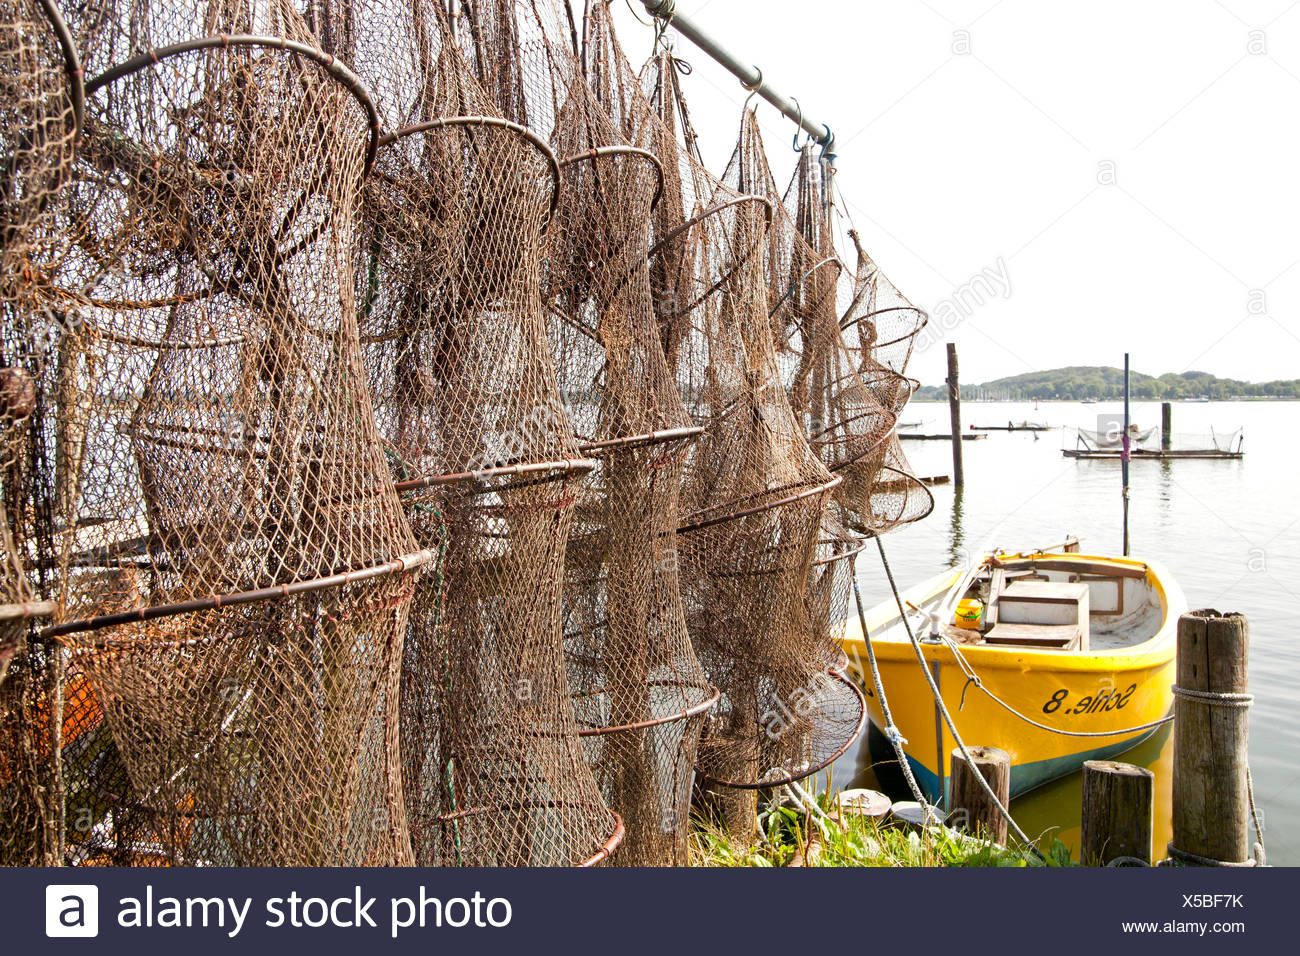 Traps and nets in the Holm fishing quarter of Schleswig, Schleswig-Holstein - Stock Image